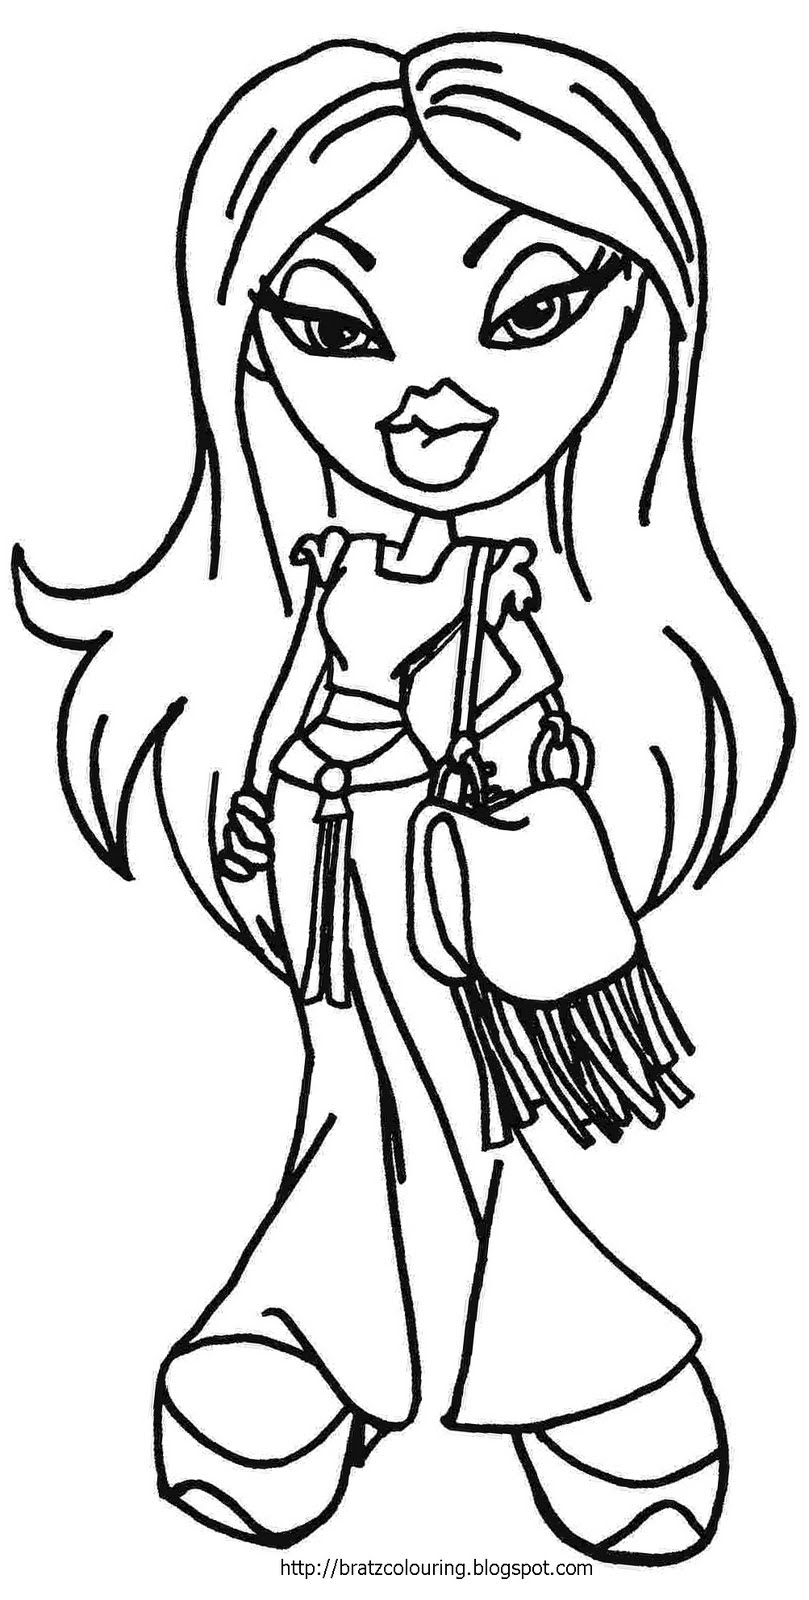 printable bratz doll coloring pages - photo#18